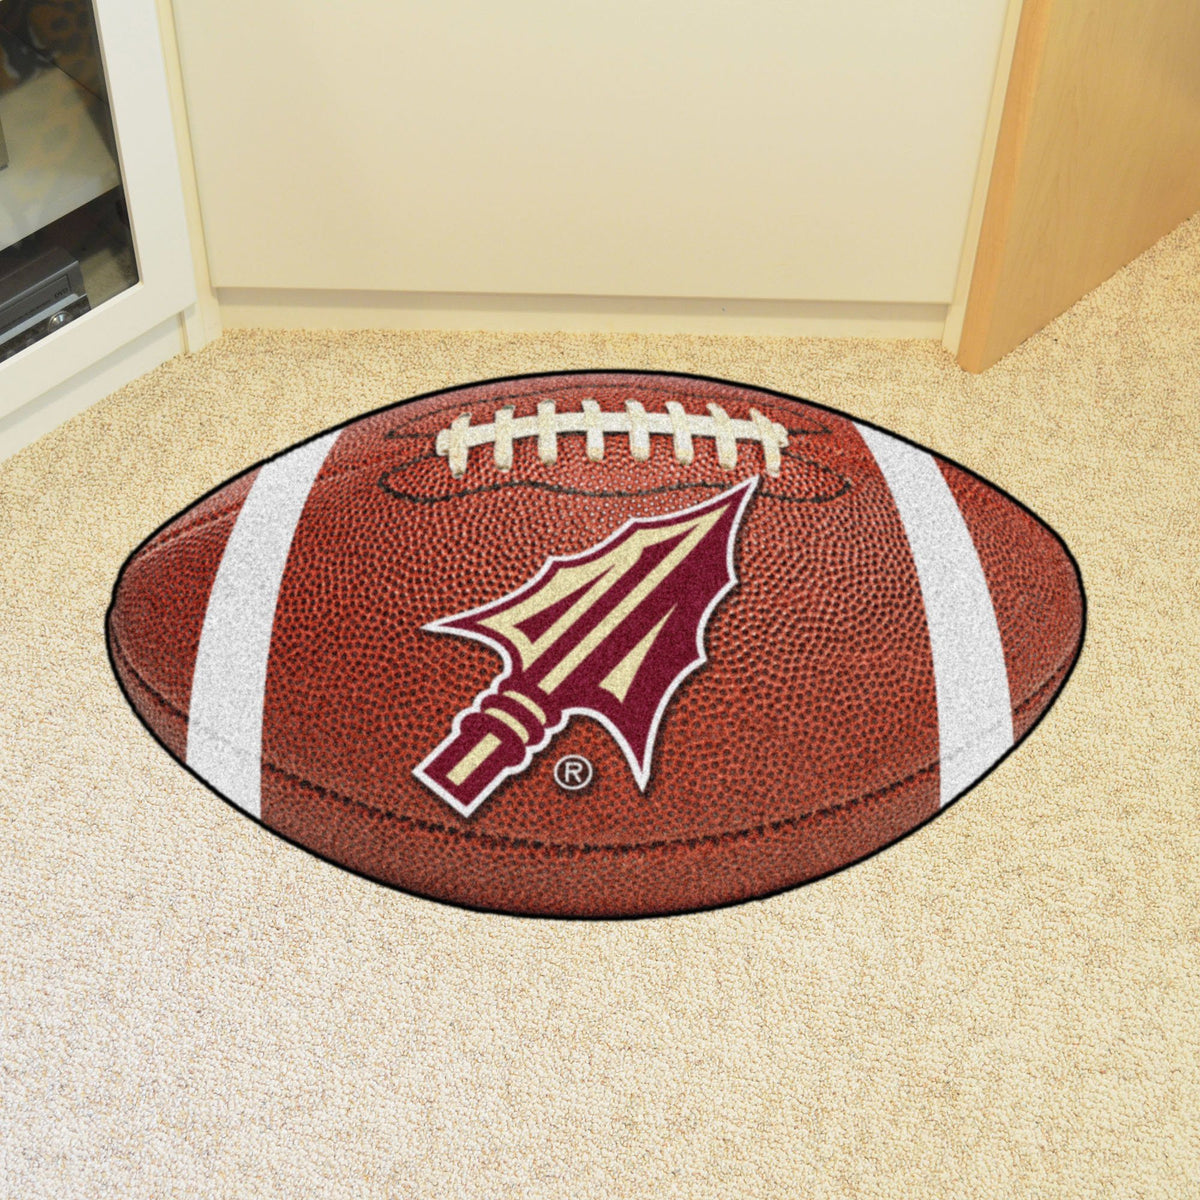 Collegiate - Football Mat: A - K Collegiate Mats, Rectangular Mats, Football Mat, Collegiate, Home Fan Mats Florida State